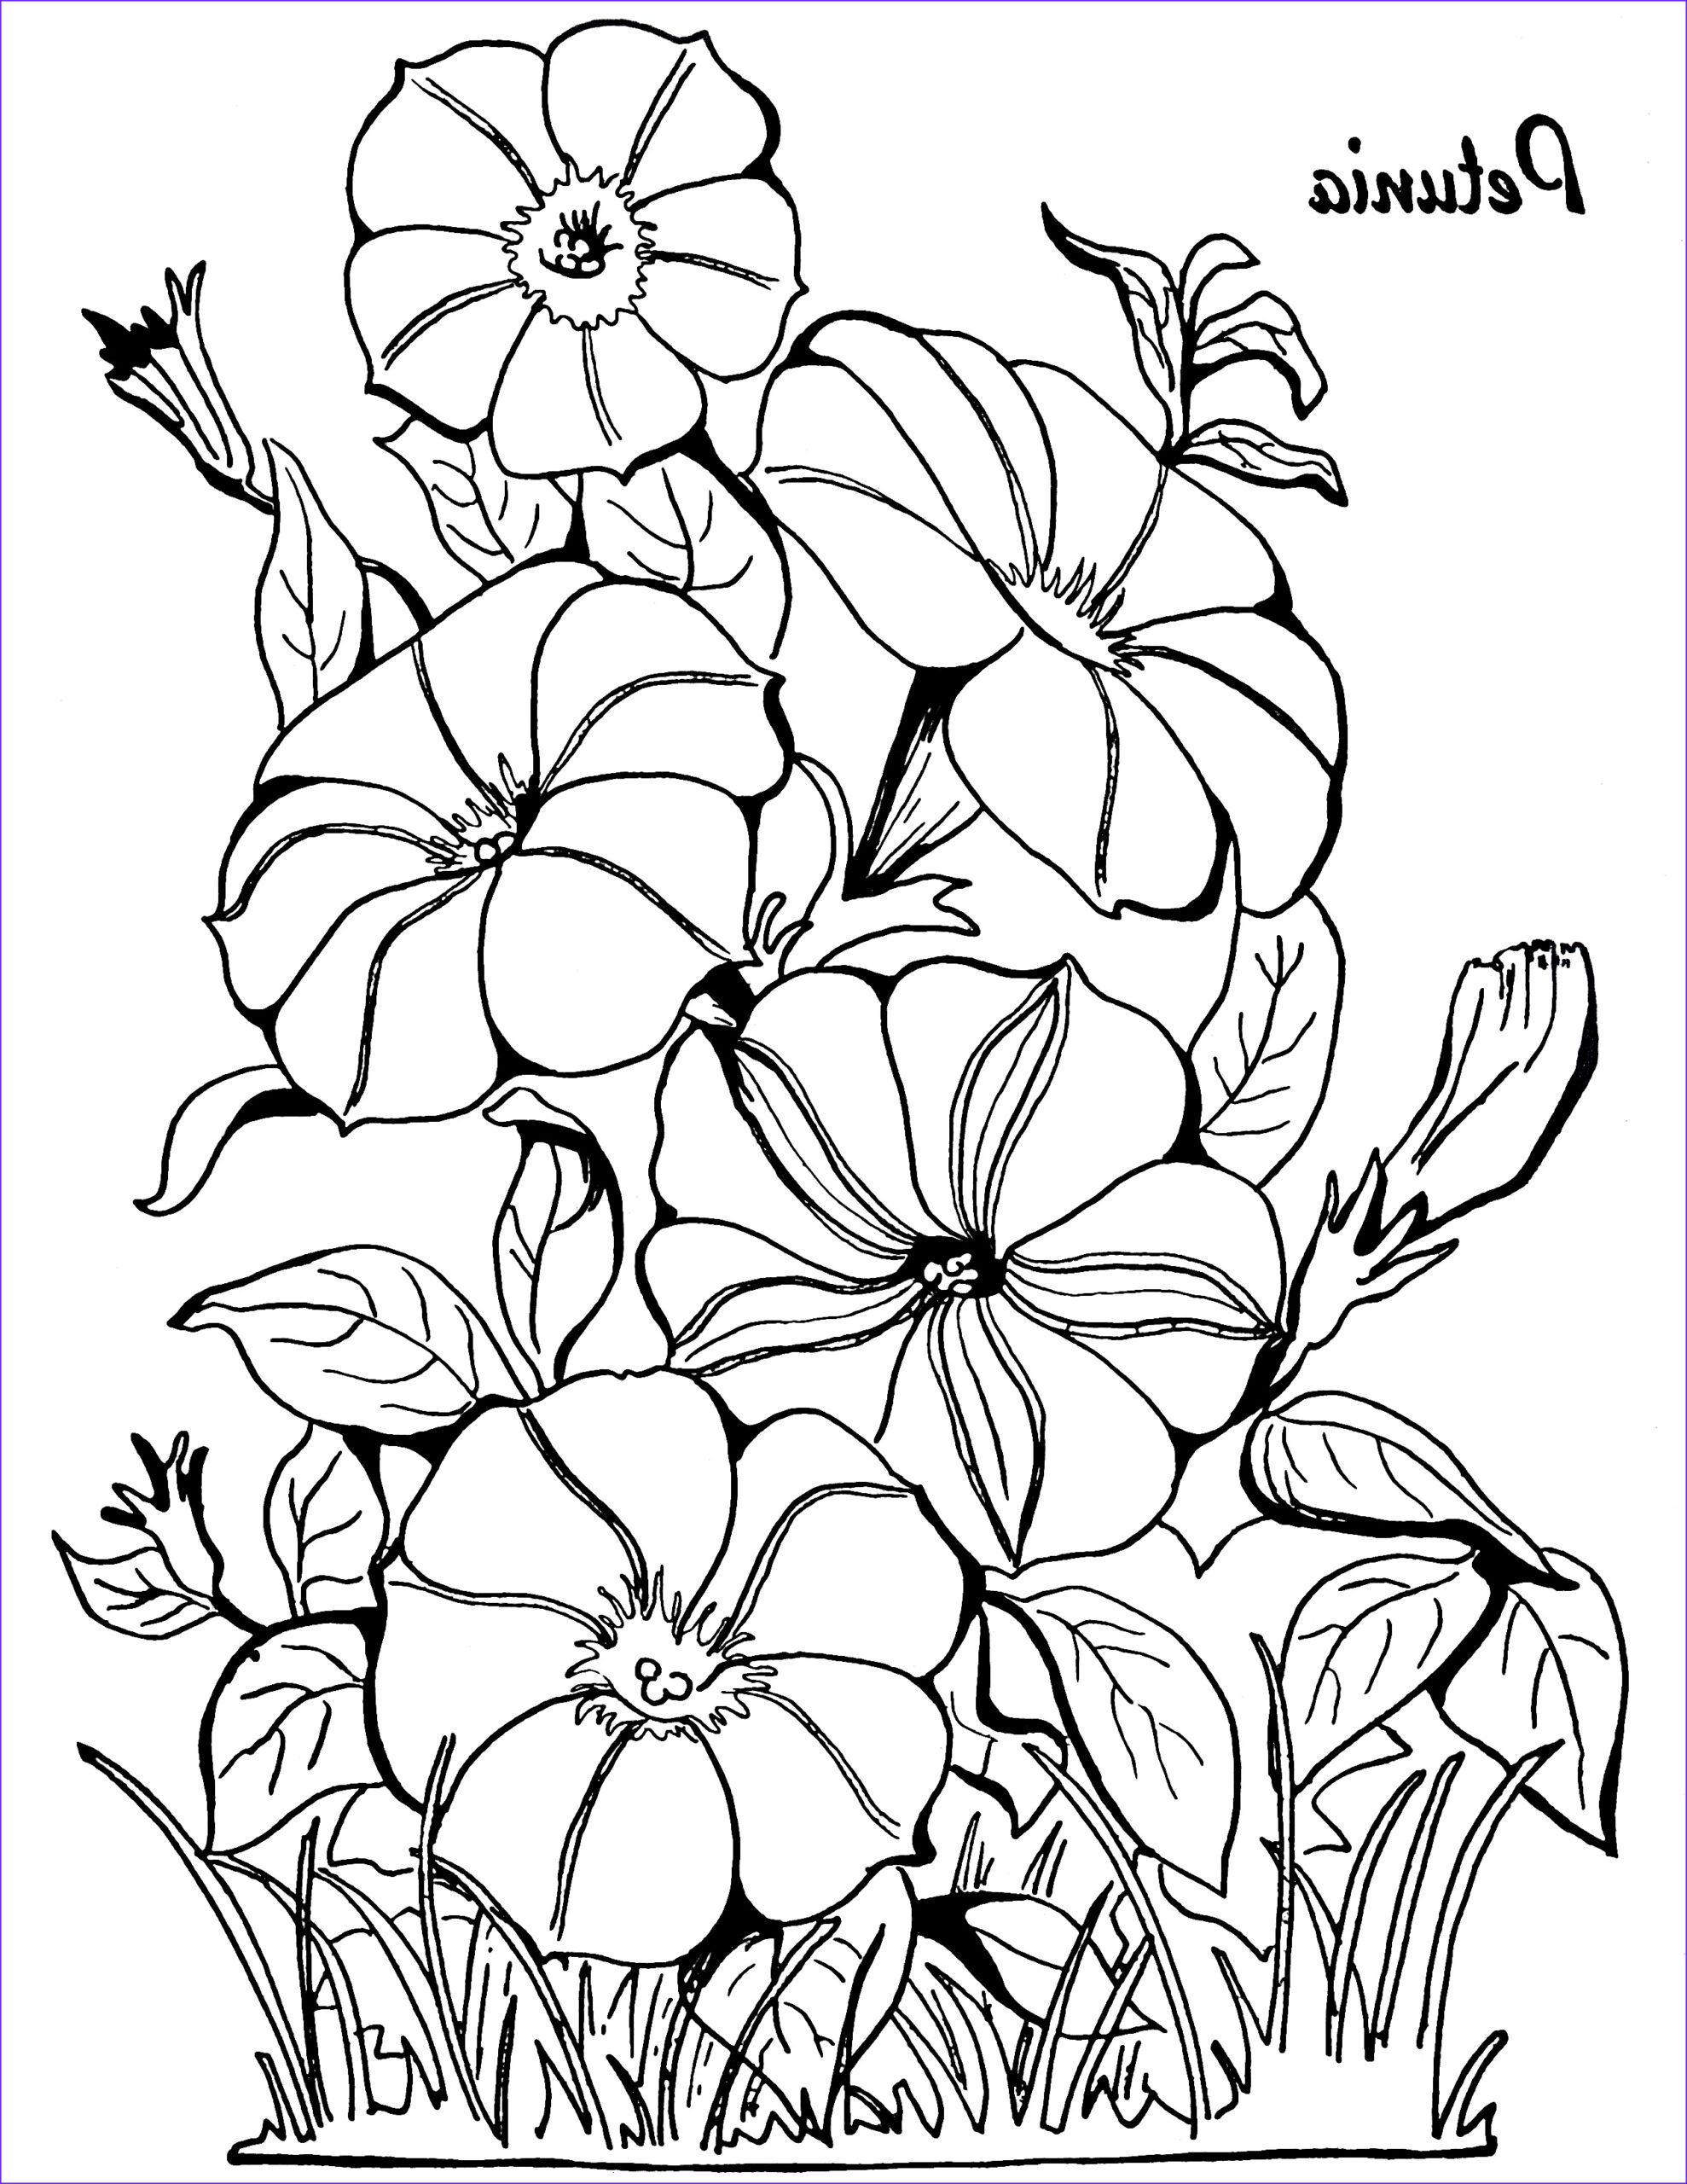 Flower Coloring Pages for Adults Best Of Images Adult Coloring Page Petunias the Graphics Fairy